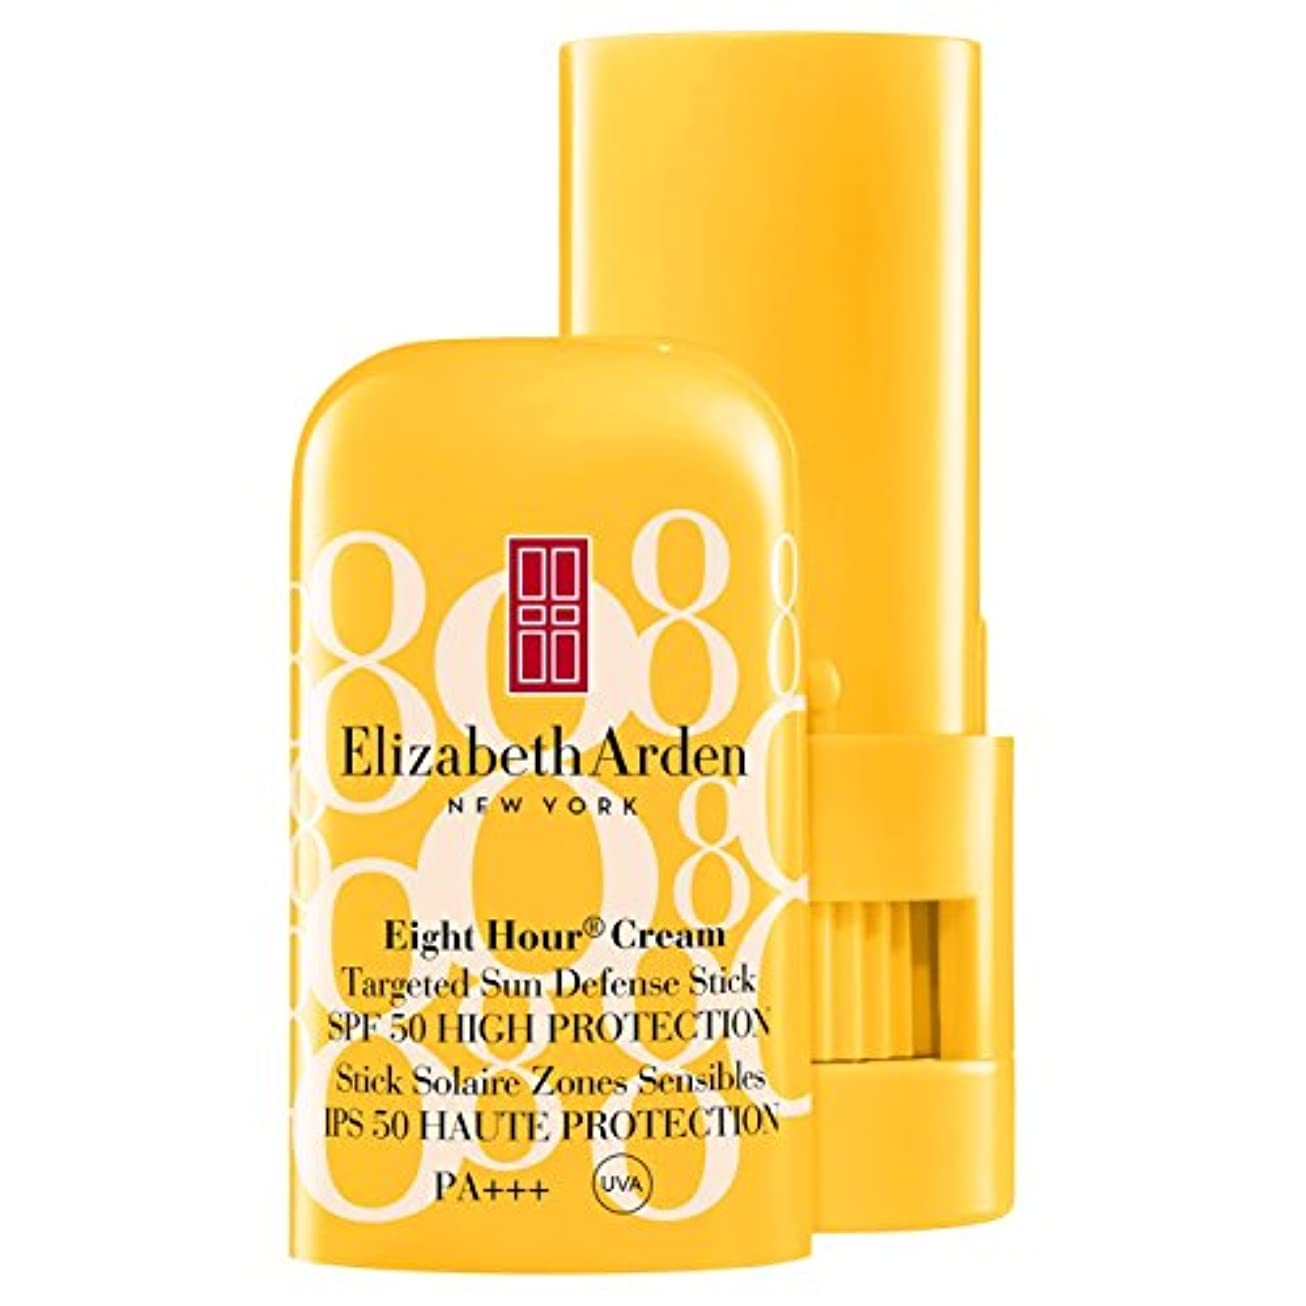 Elizabeth Arden Eight Hour? Cream Targeted Sun Defense Stick SPF50 High Protection 15ml - エリザベスアーデン8?クリームは、太陽の...